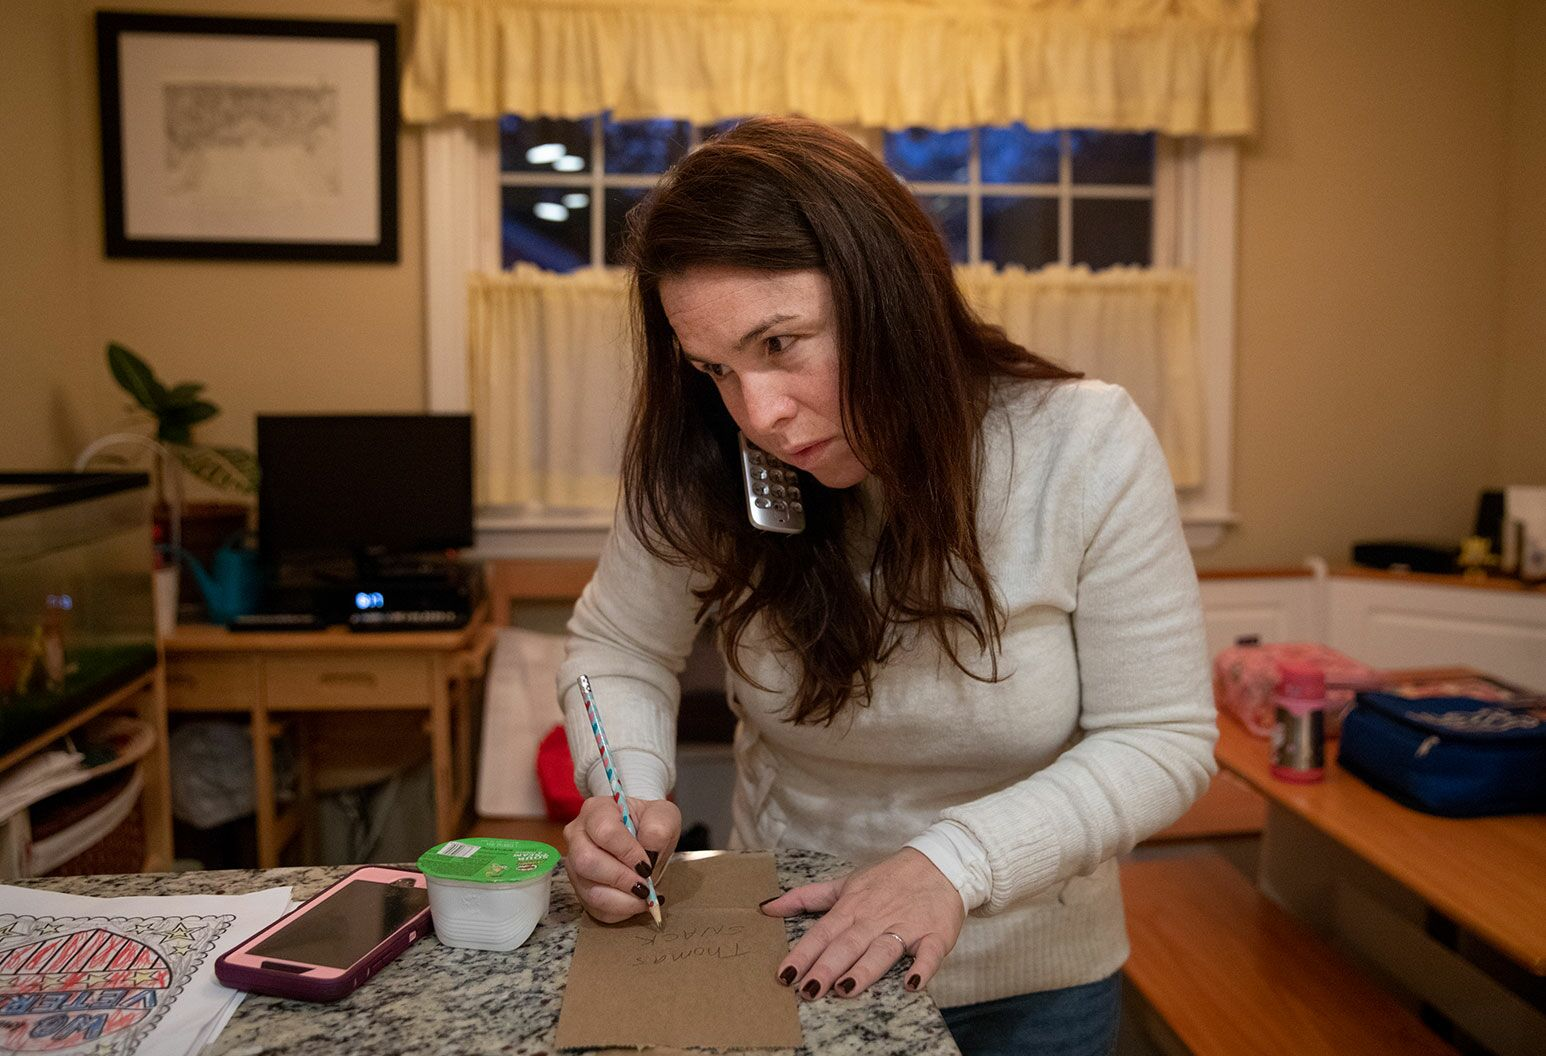 A woman with long auburn hair in a white sweater, stands by a countertop holding a phone to her ear with her shoulder as she writes on a cardboard cutout with a pencil.